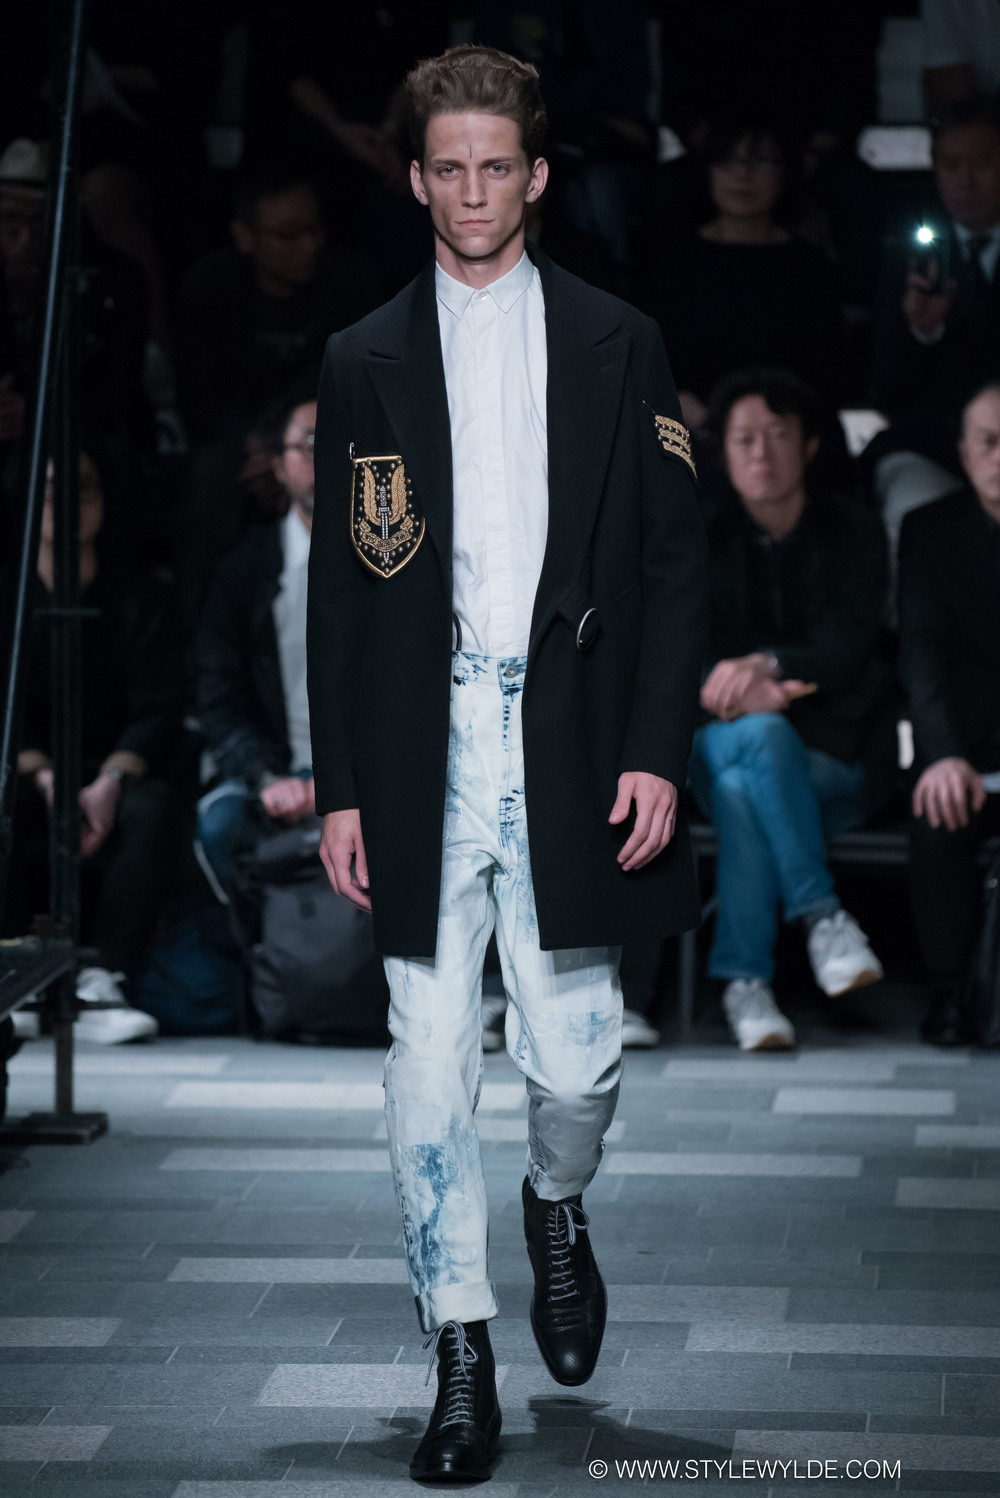 stylewylde_5351_pour_les_hommes_fw_2016-29.jpg